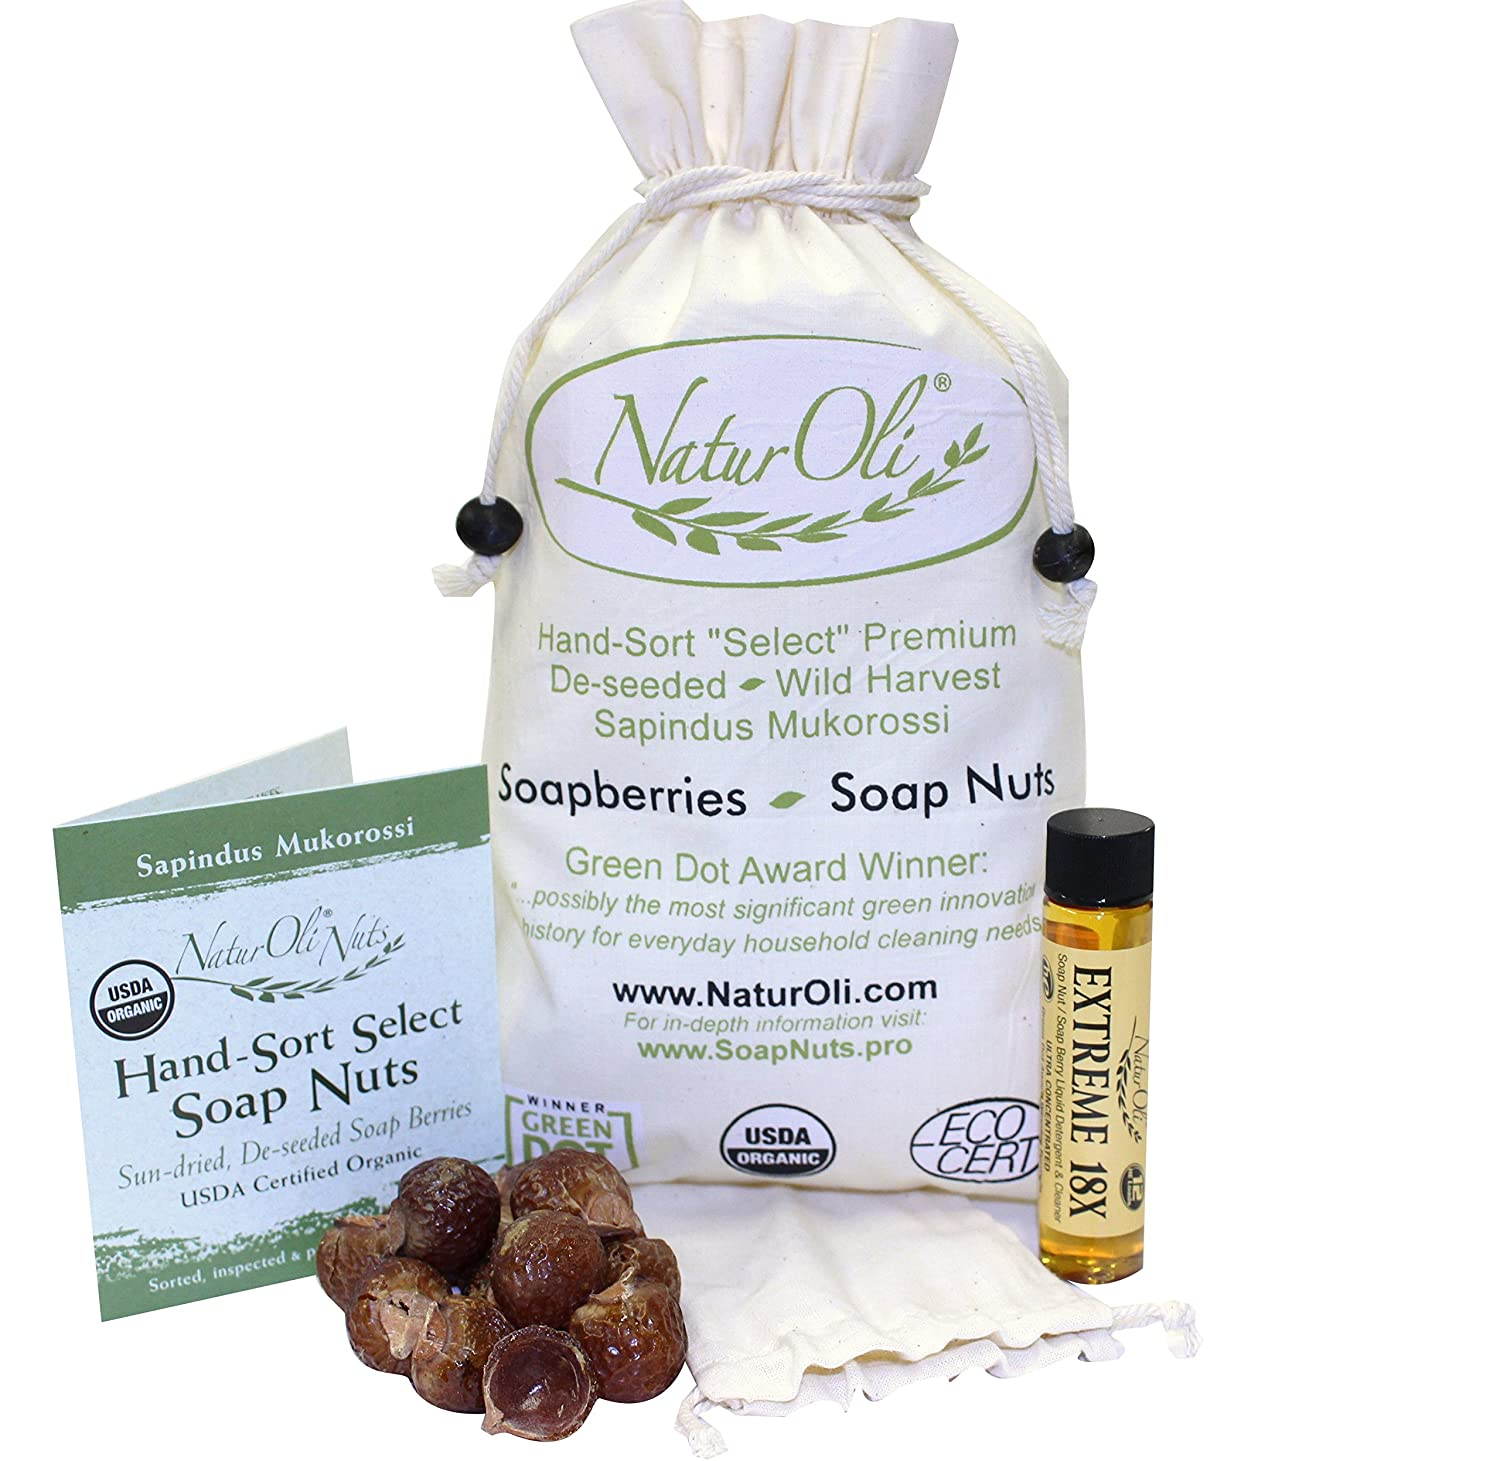 NaturOli Soap Nuts/Soap Berries. 1-Lb USDA Organic (240 Loads) + 18X Bonus! (12 Loads) Select Seedless. Wash Bag, Tote Bag, 8-pg info. Organic Laundry Soap/Natural Cleaner. Processed in USA!